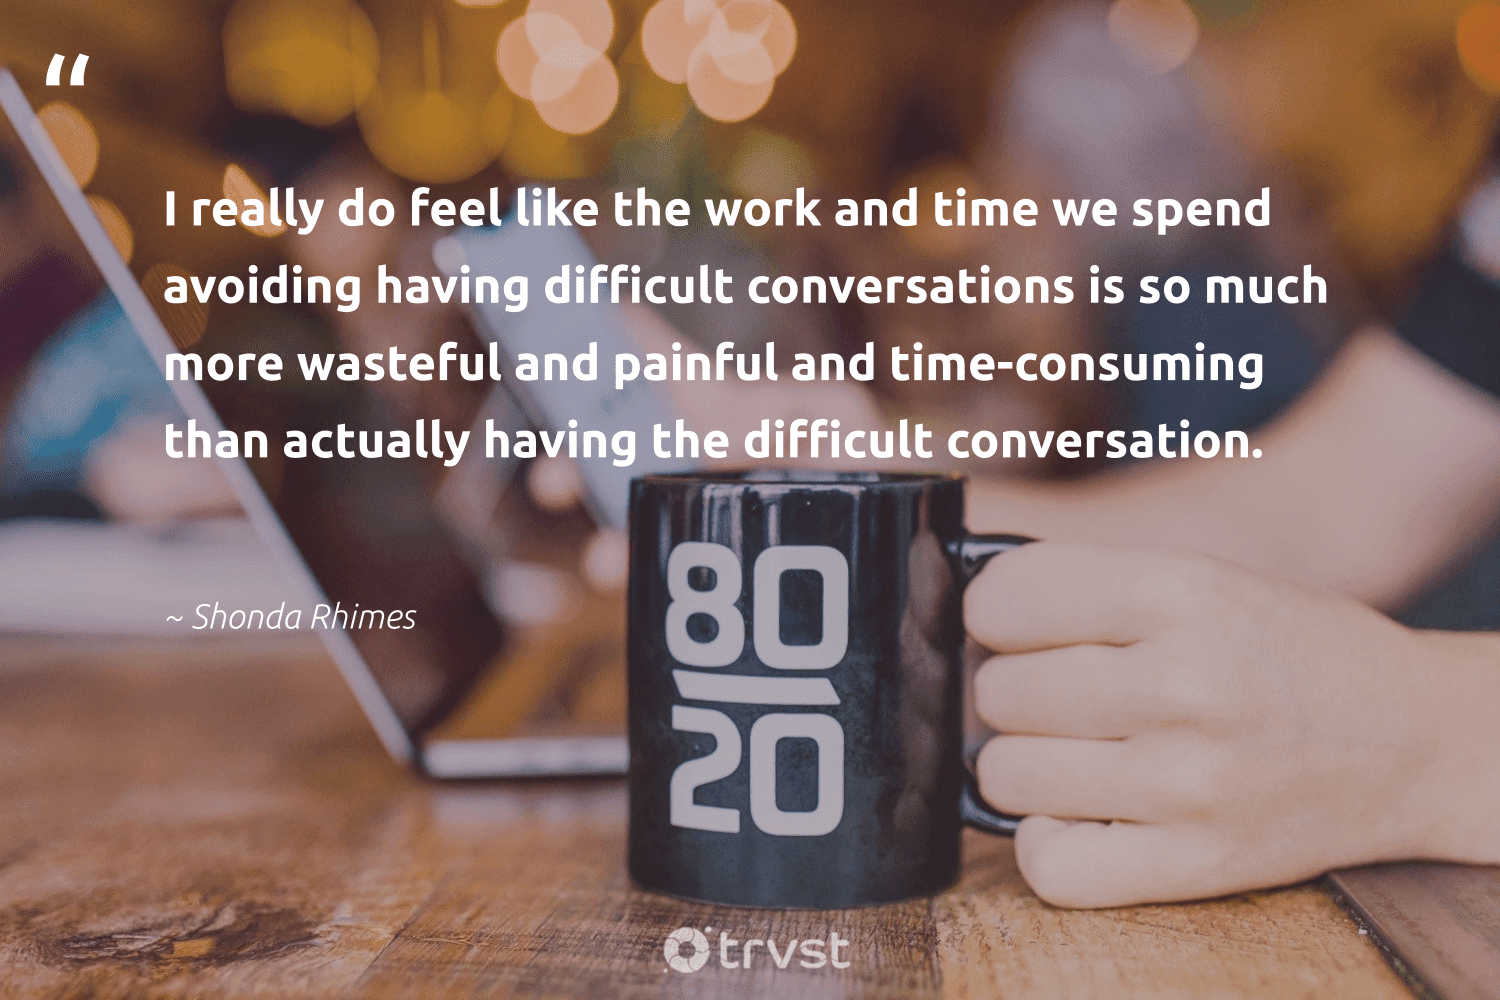 """I really do feel like the work and time we spend avoiding having difficult conversations is so much more wasteful and painful and time-consuming than actually having the difficult conversation.""  - Shonda Rhimes #trvst #quotes #nevergiveup #takeaction #softskills #dotherightthing #futureofwork #socialimpact #begreat #collectiveaction #impact #gogreen"